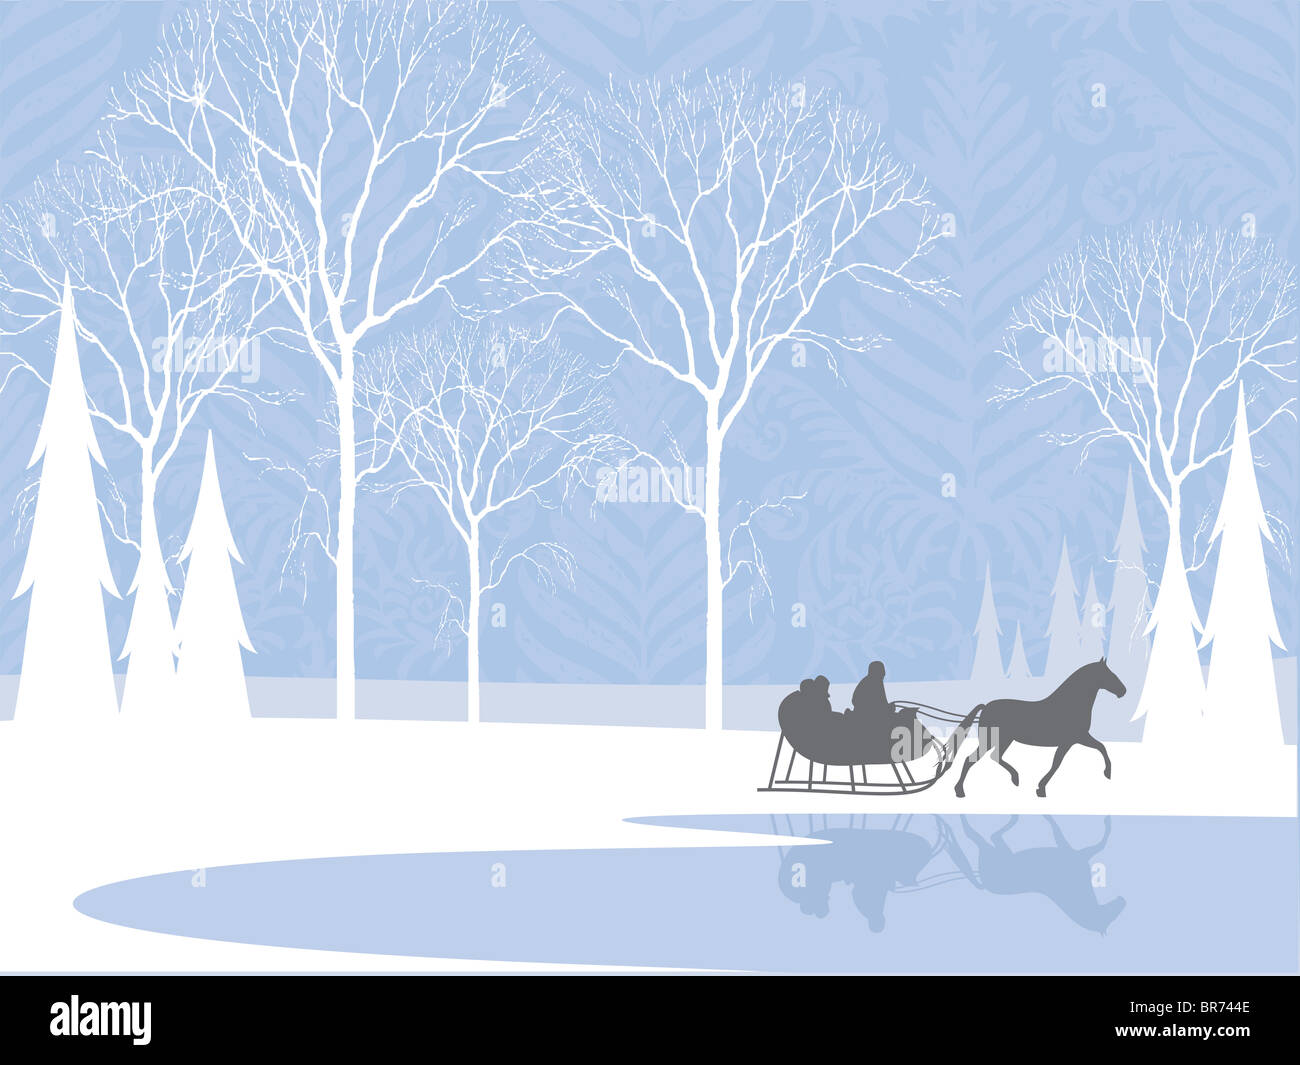 Silhouette of a horse-drawn sleigh ride by a lake in the snow Stock Photo